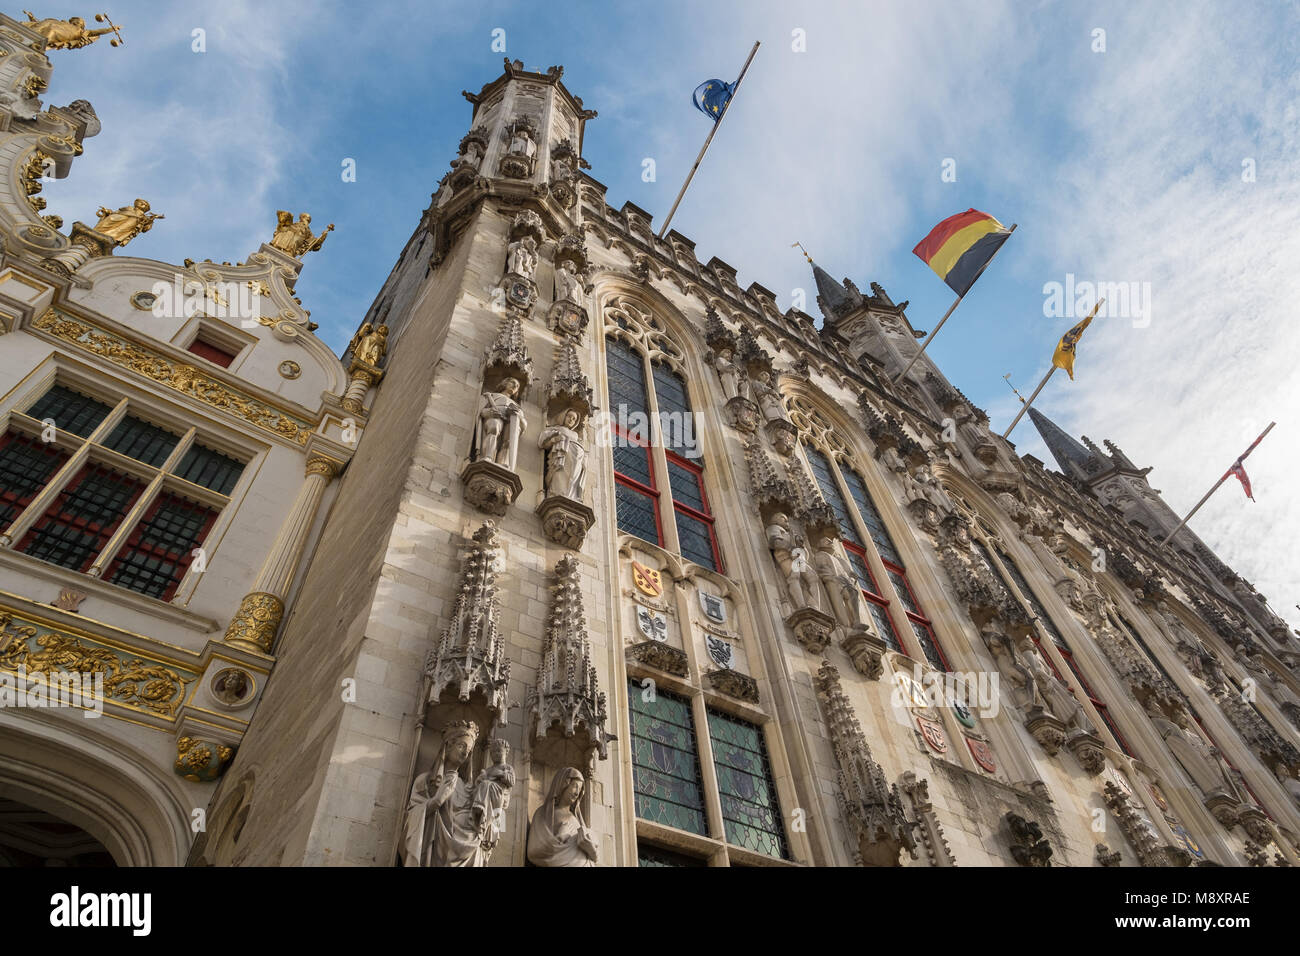 Looking up at the City Hall in Bruges, Belgium. Stock Photo